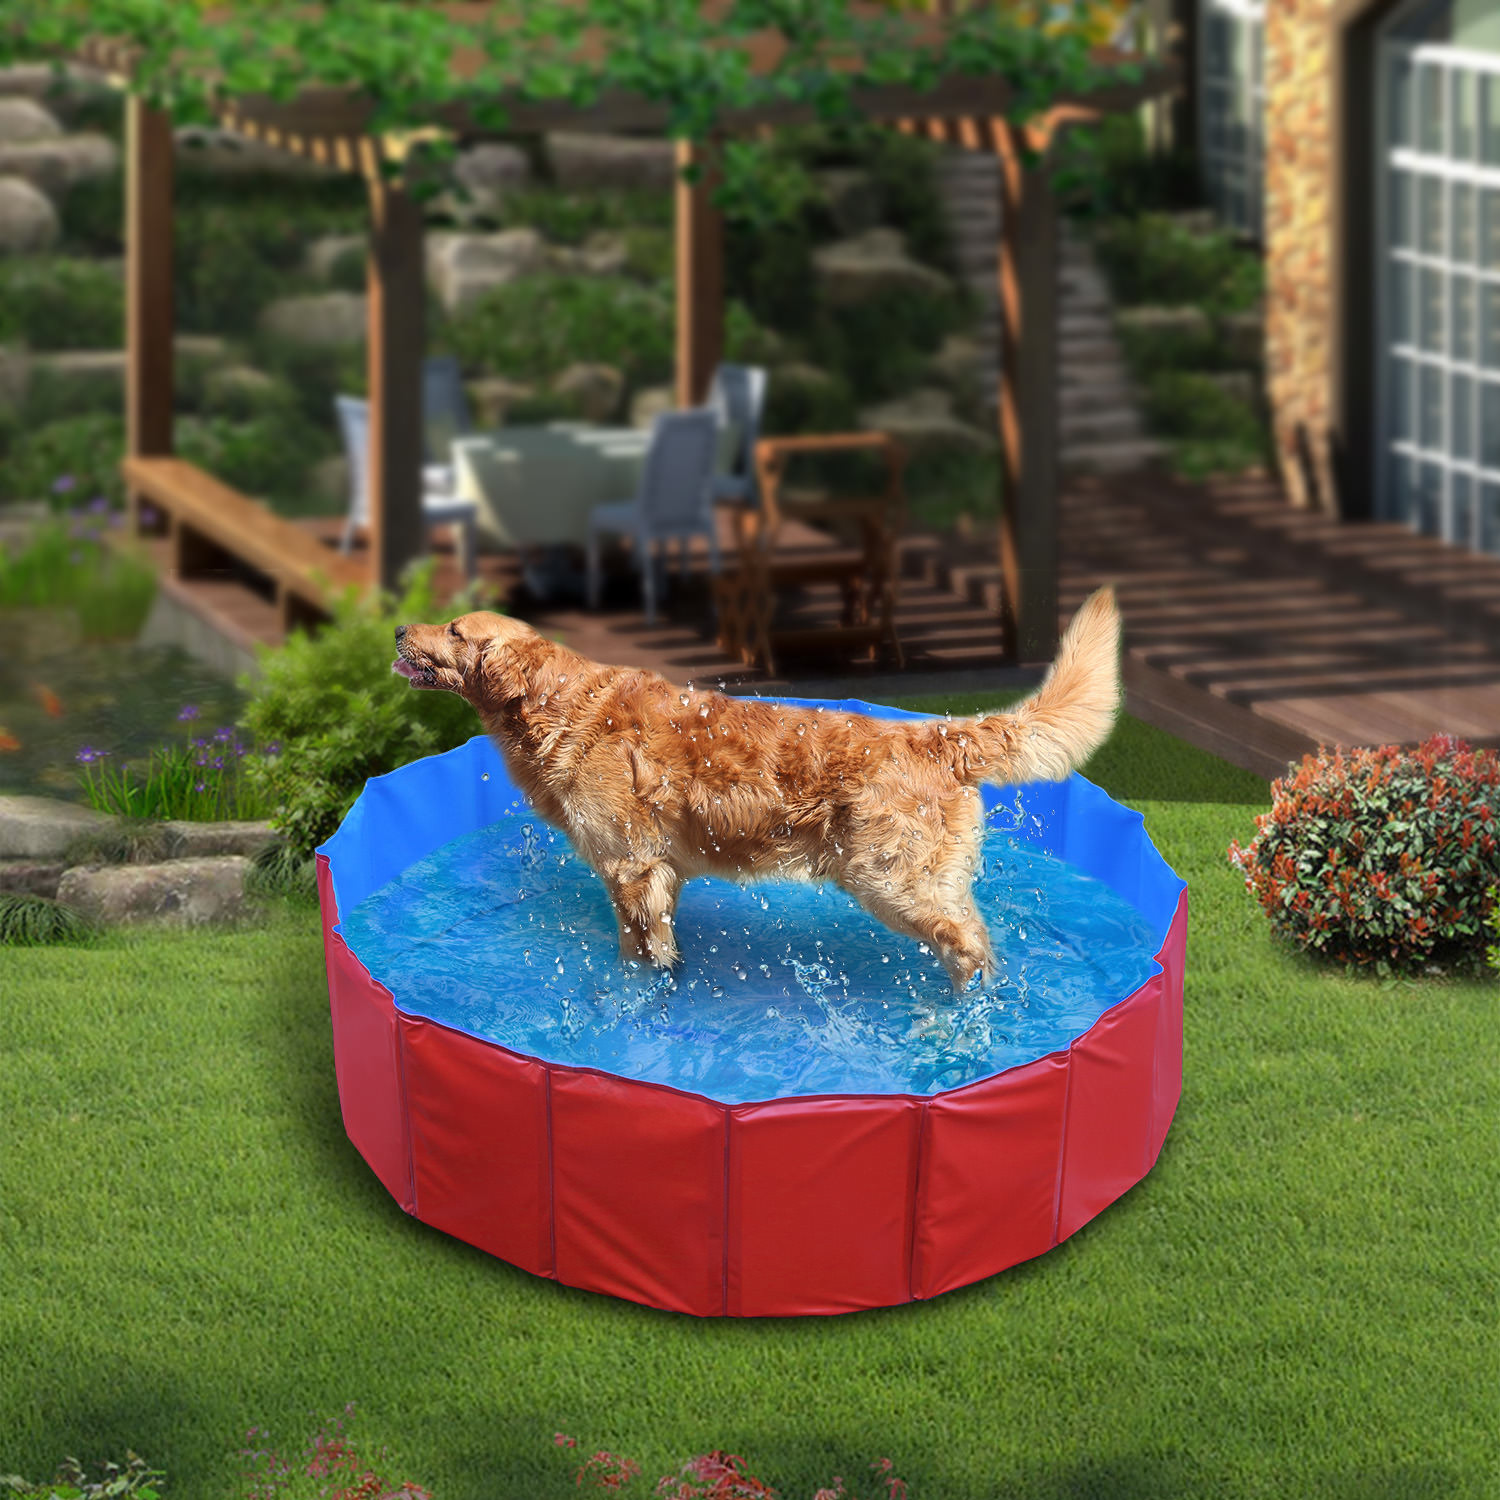 GPCT [48 INCH] Foldable/Portable [Collapsible] Large Dog Pet Bathing Swimming Pool. Durable, Heavy Duty, Bathing Bath Tub Wash Pond Water Washer For Toddlers, Dogs, Cats, Pets - Blue